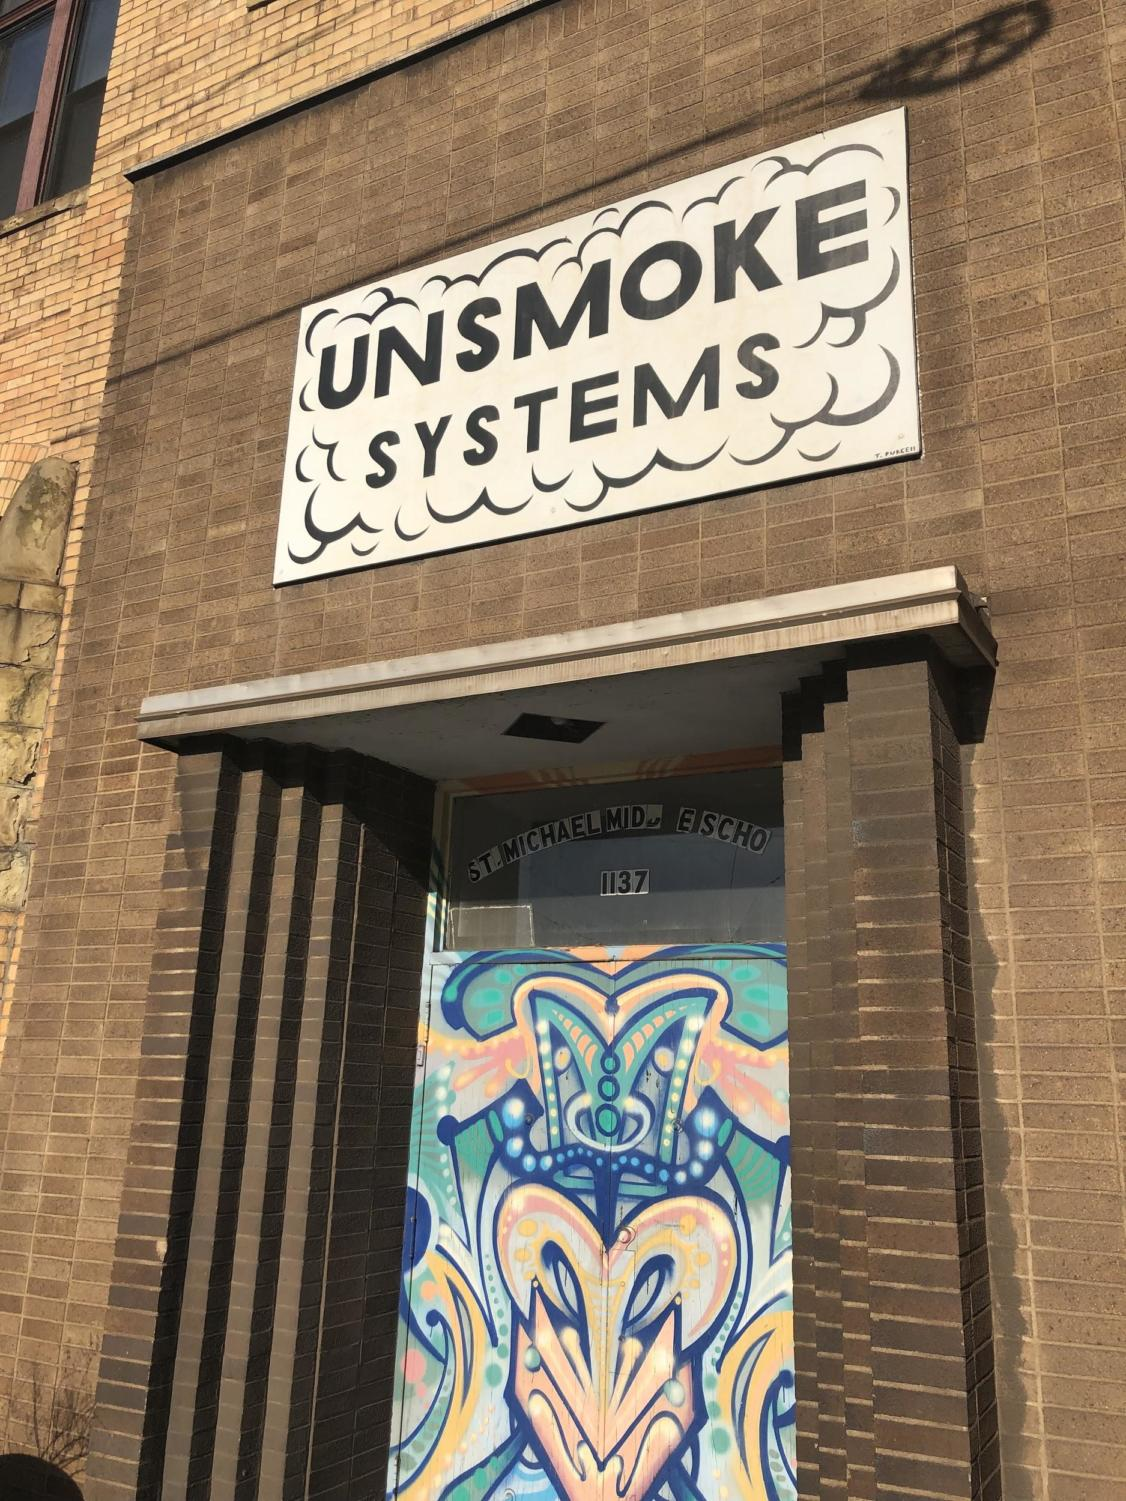 Jeb Seldman acquired UnSmoke Systems Artspace in 2008, and has since transformed it into a community hub for art.